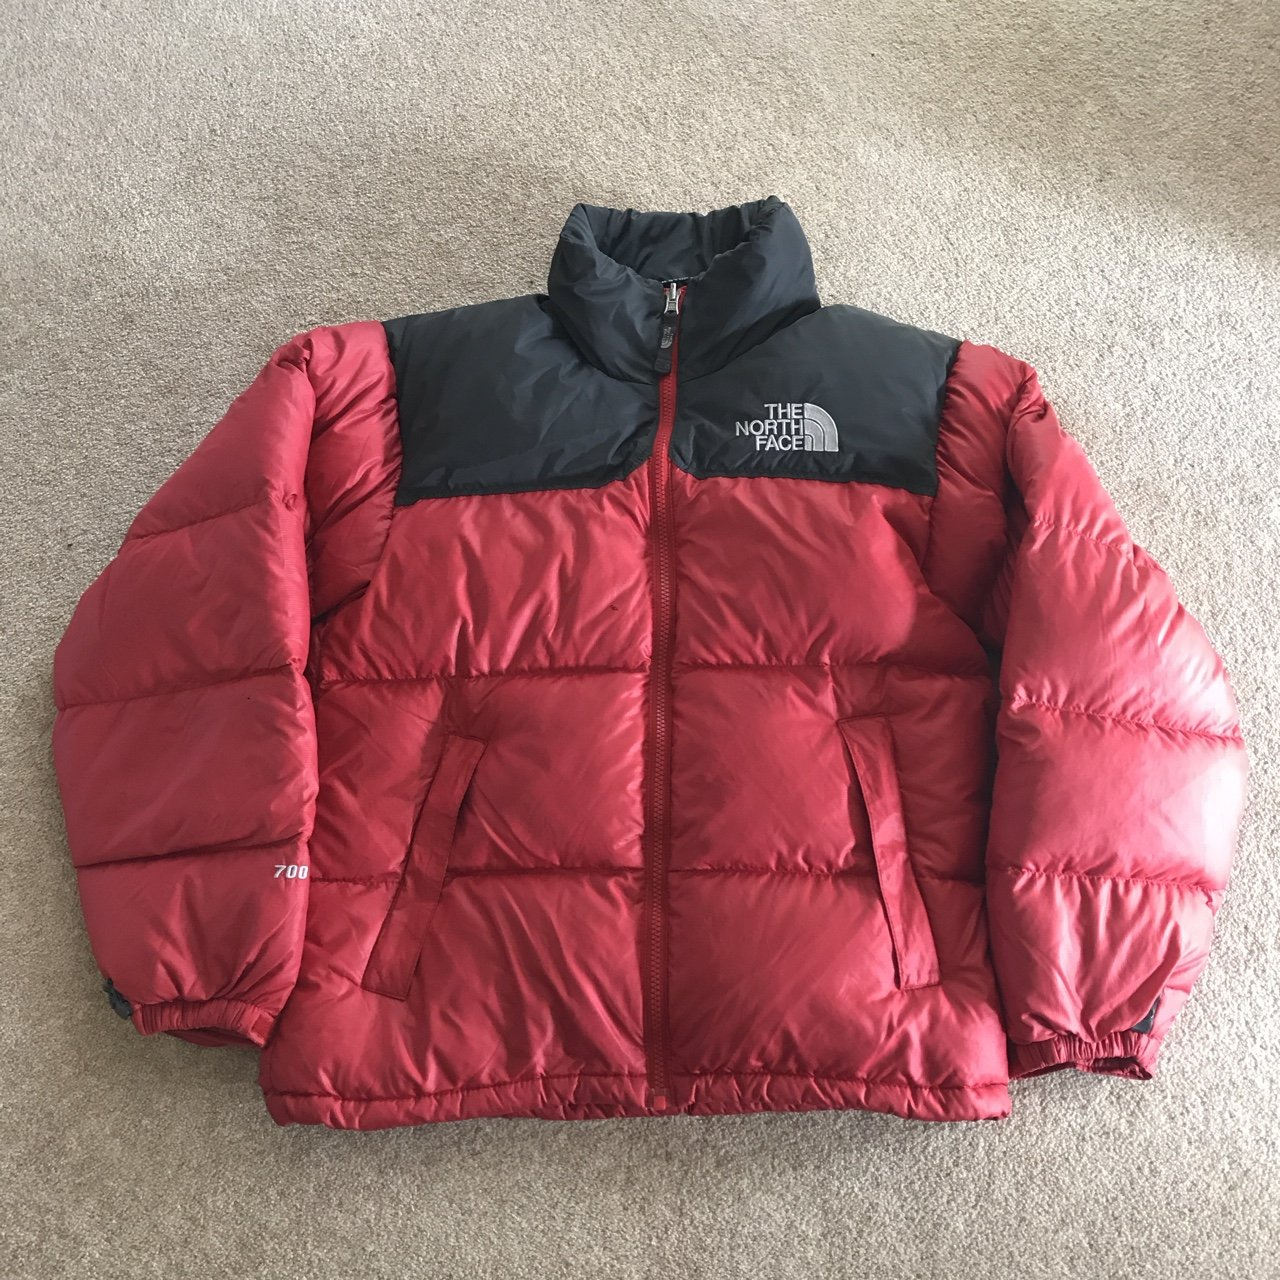 Mens Red North Face Nuptse 700 Down Size XS Puffer Jacket of - Depop 7551212ef